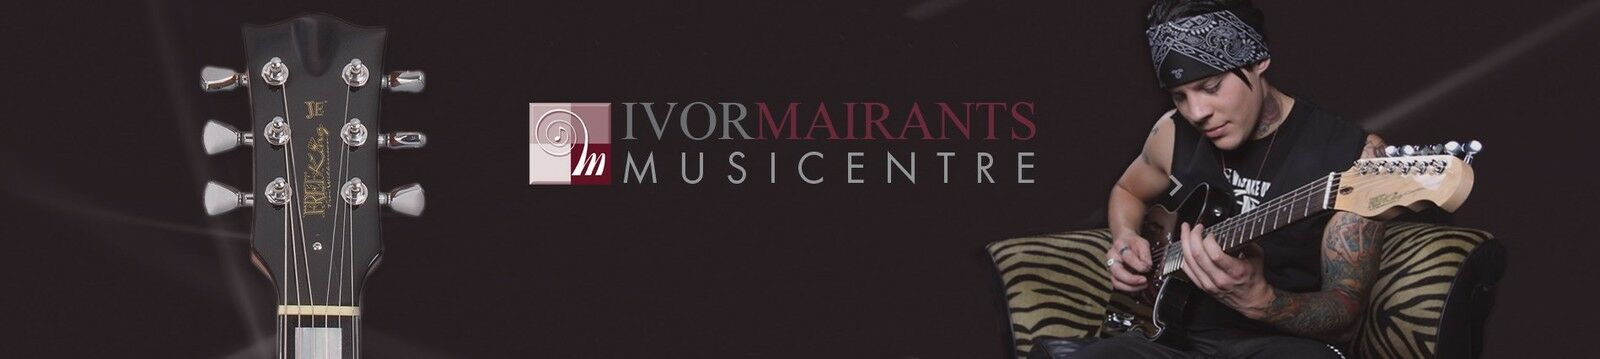 Ivor Mairants Musicentre